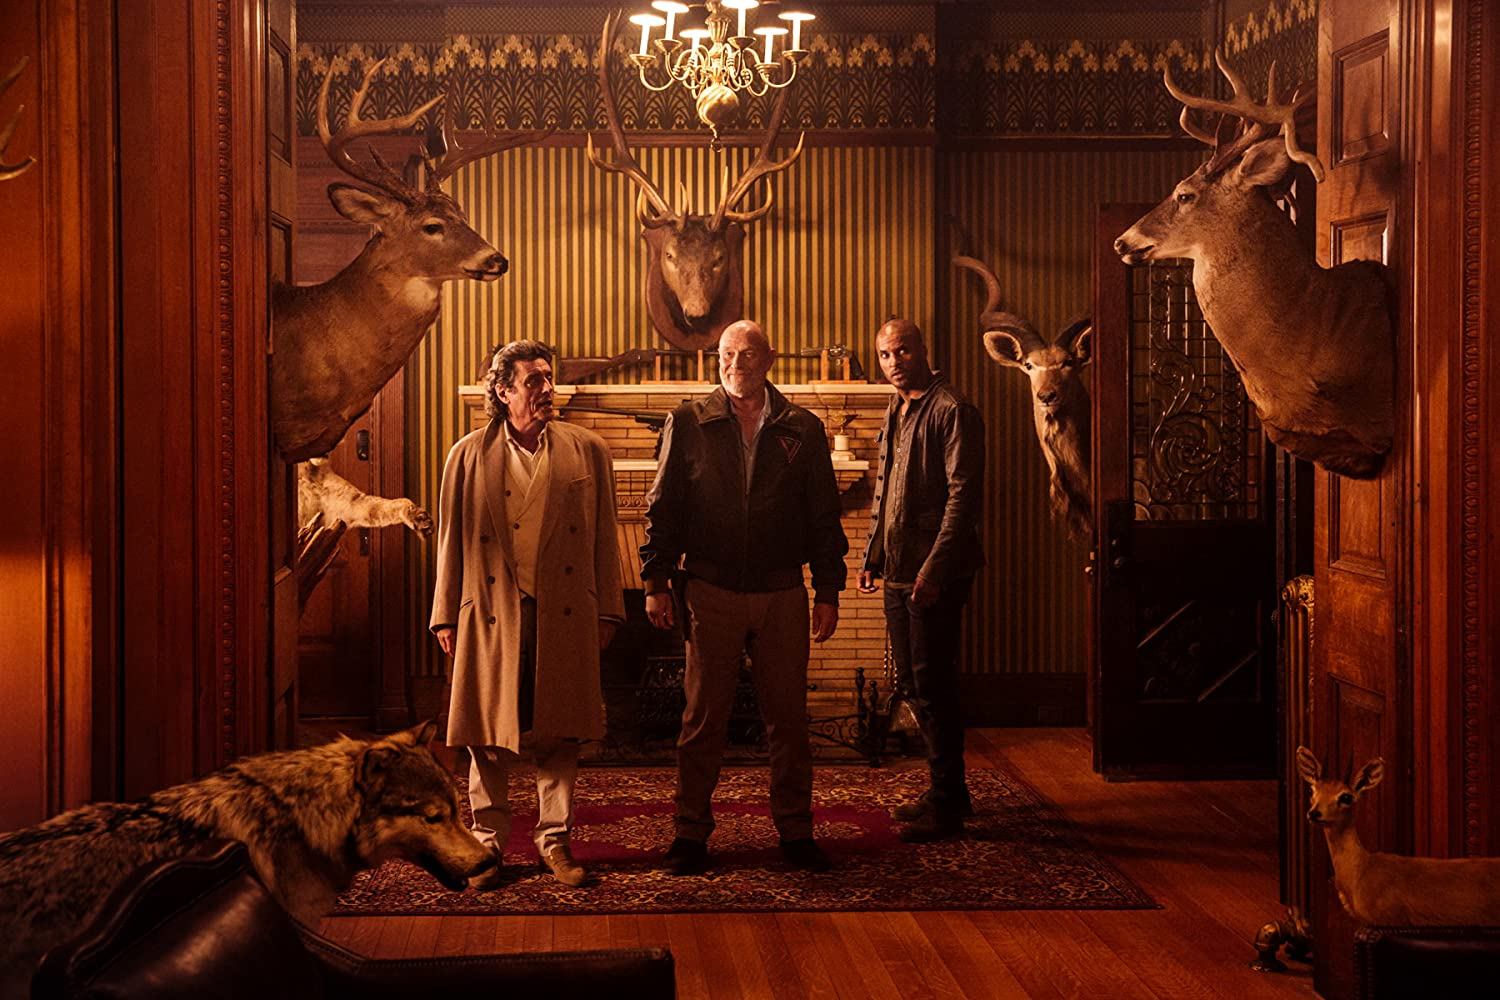 He uses antlers in all of his decorating American Gods